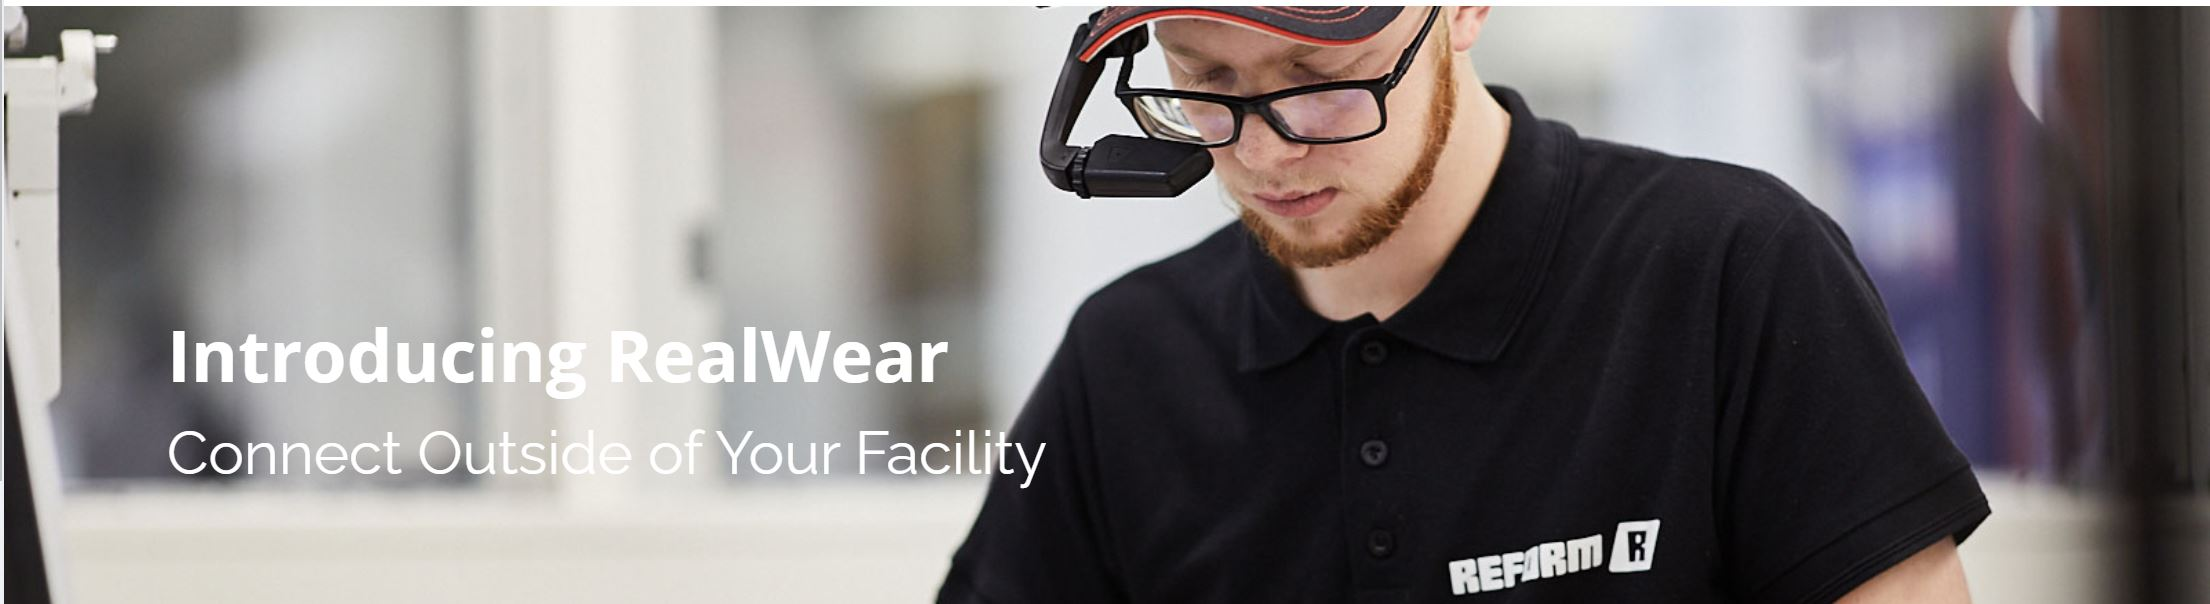 RealWear Connect Outside of Your Facility